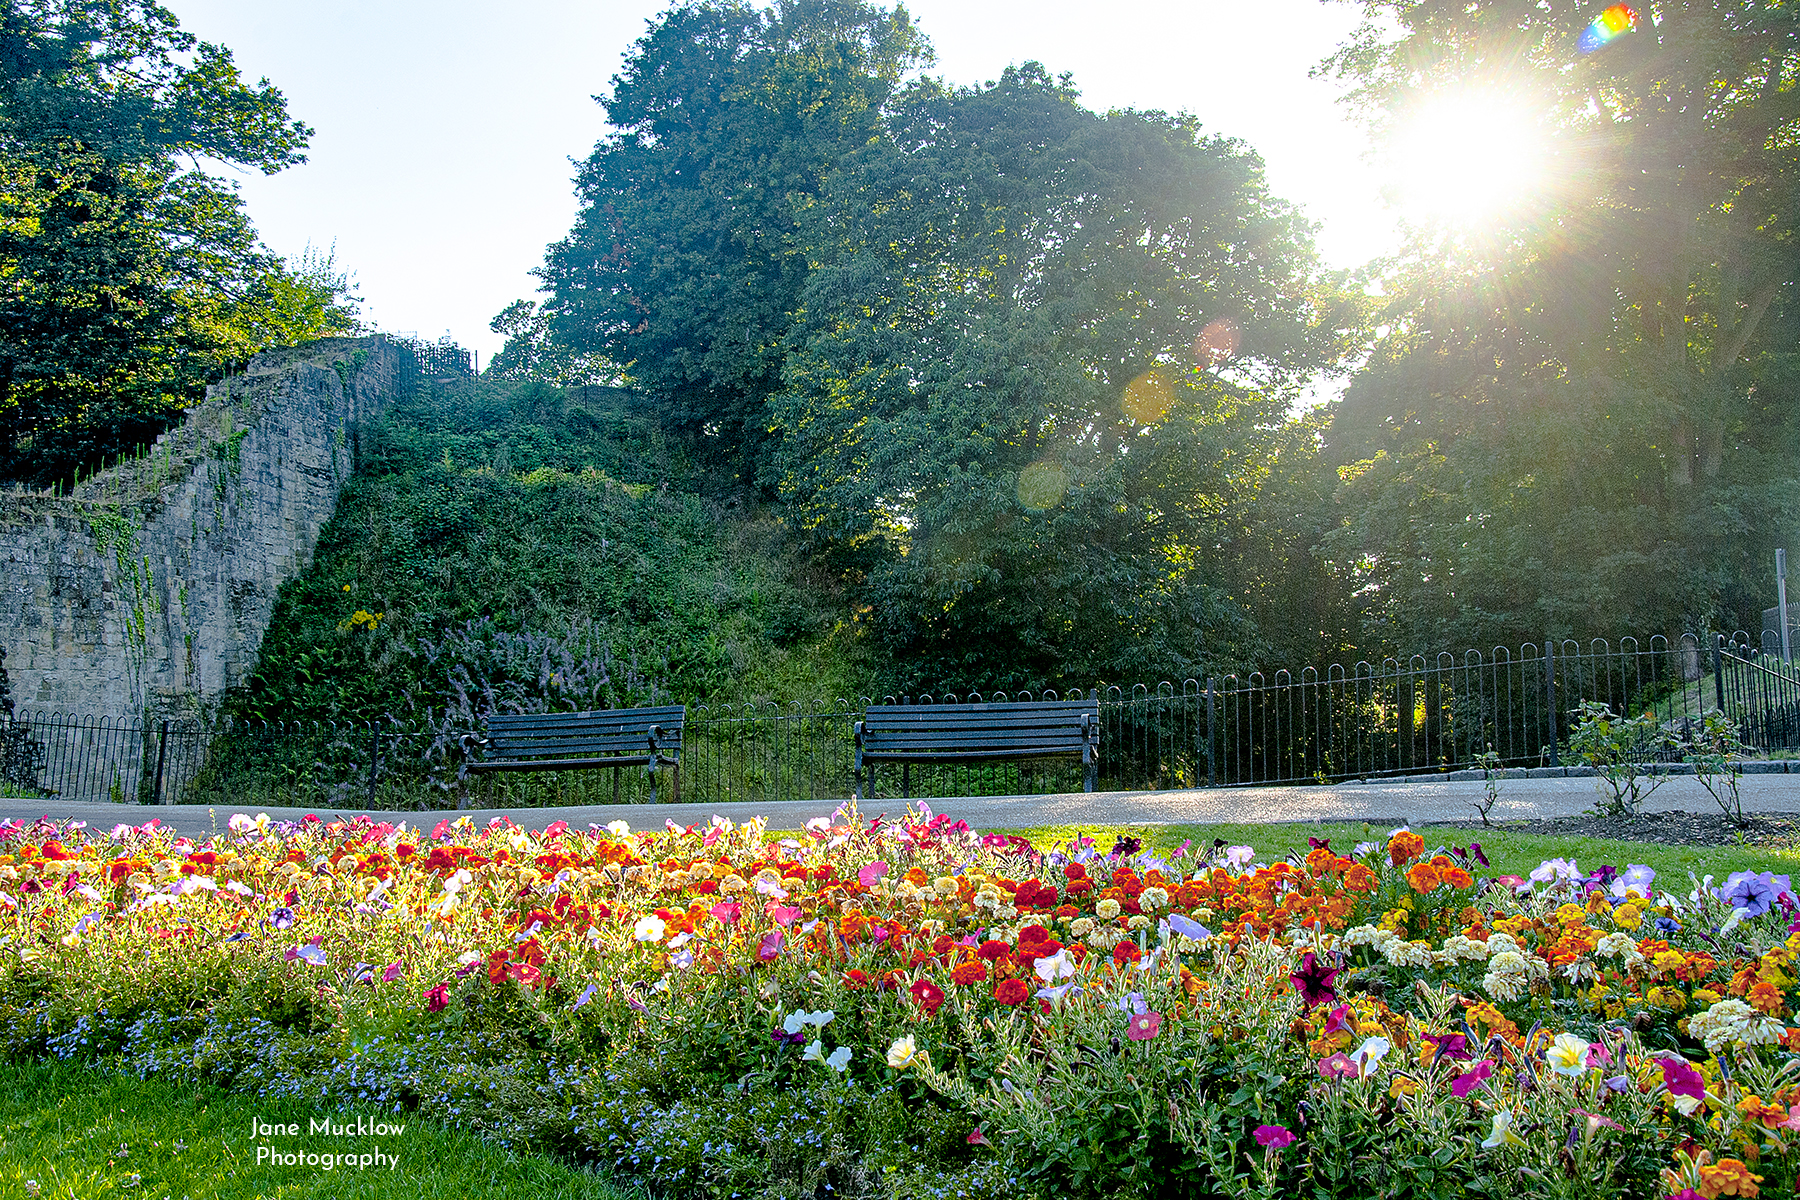 Photo by Jane Mucklow of flowers on Cannon Lawn of Tonbridge Castle in the summer afternoon sunshine